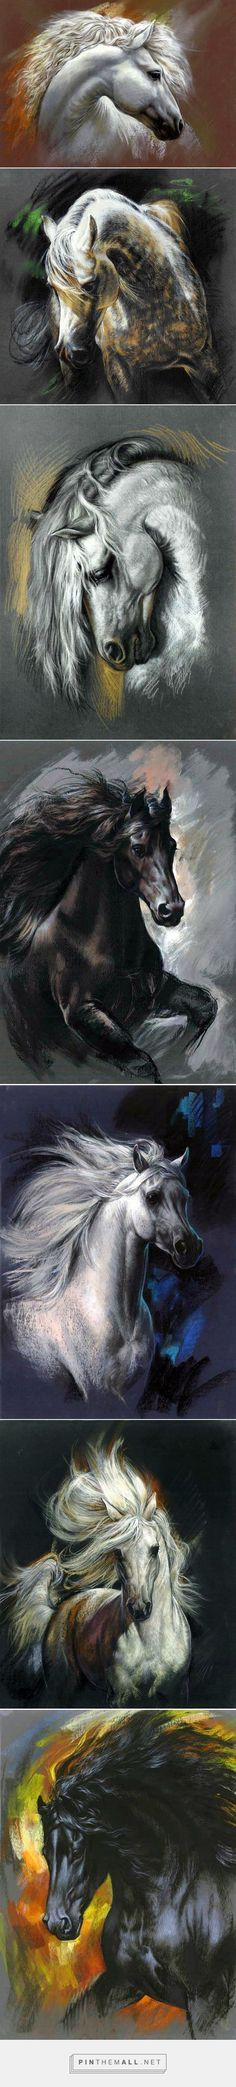 "Horse art. Magnificent digital ""paintings"" by Zorina Baldescu. - created via https://pinthemall.net"